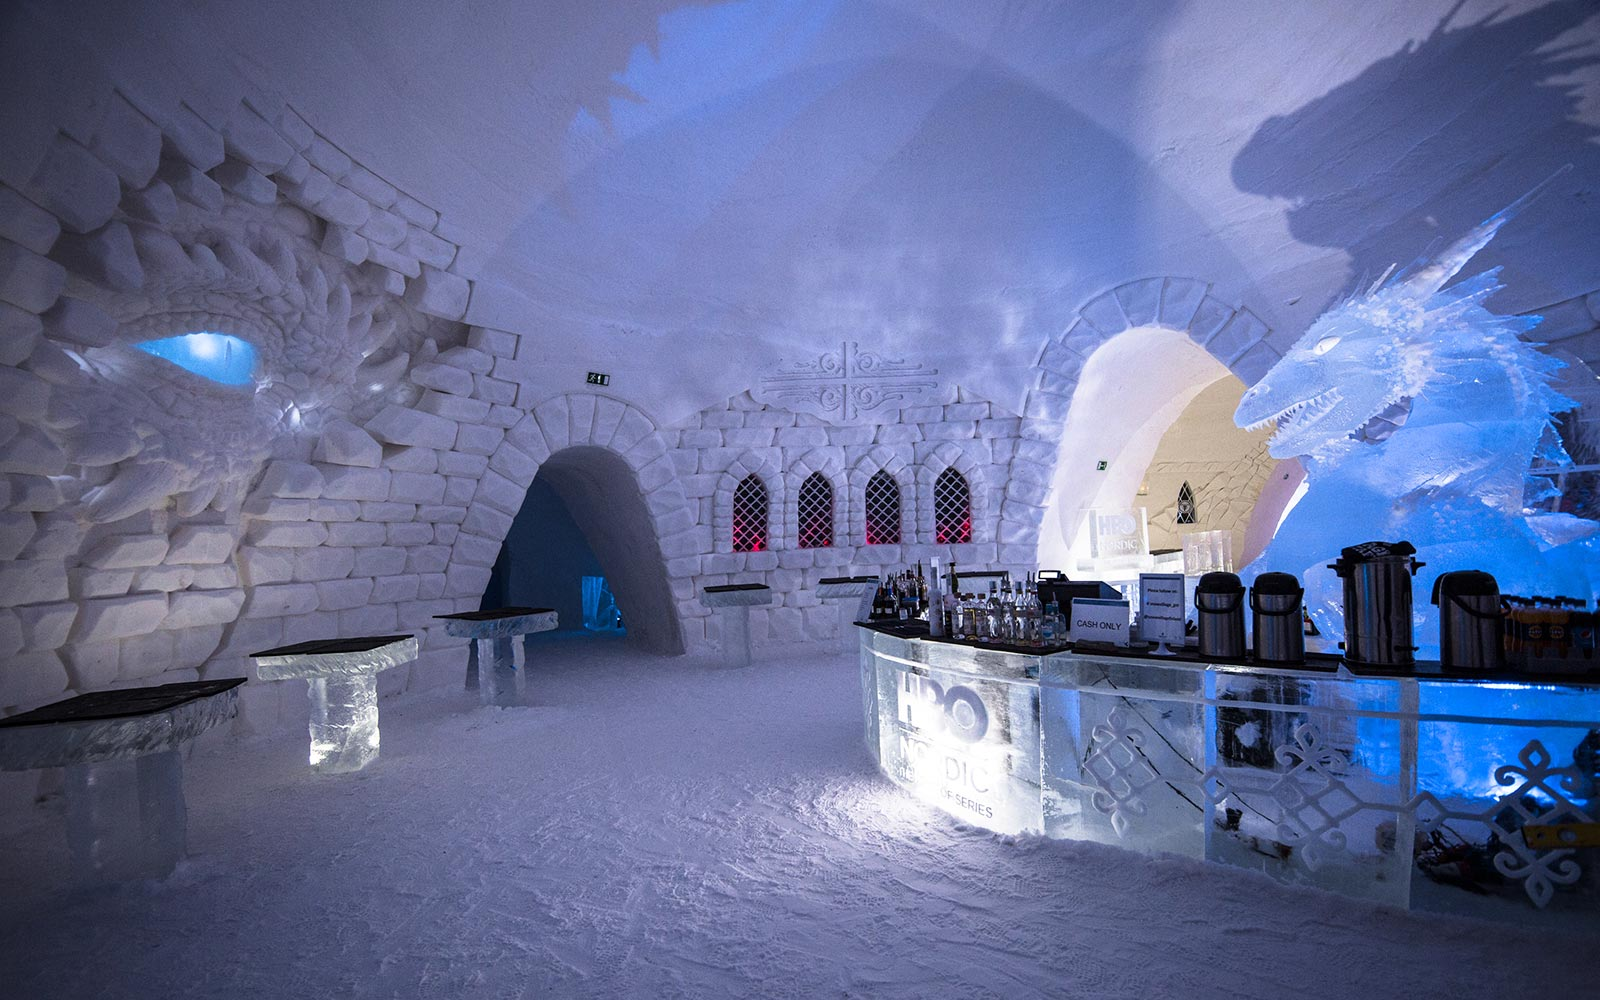 This 'Game Of Thrones' Ice Hotel Will Make Anyone Feel Like They're in Winterfell